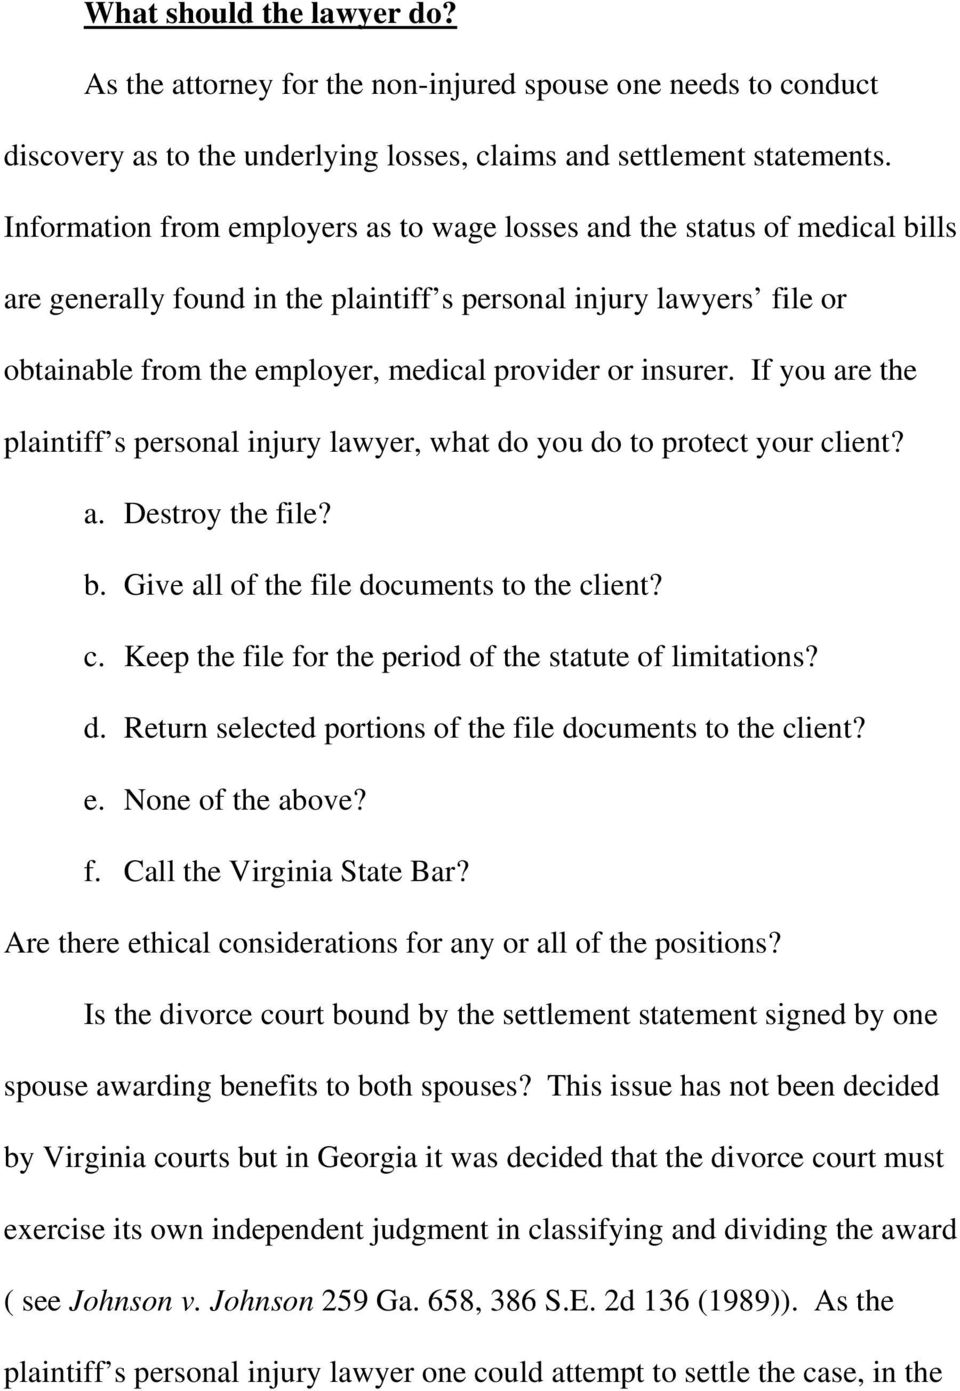 insurer. If you are the plaintiff s personal injury lawyer, what do you do to protect your client? a. Destroy the file? b. Give all of the file documents to the client? c. Keep the file for the period of the statute of limitations?